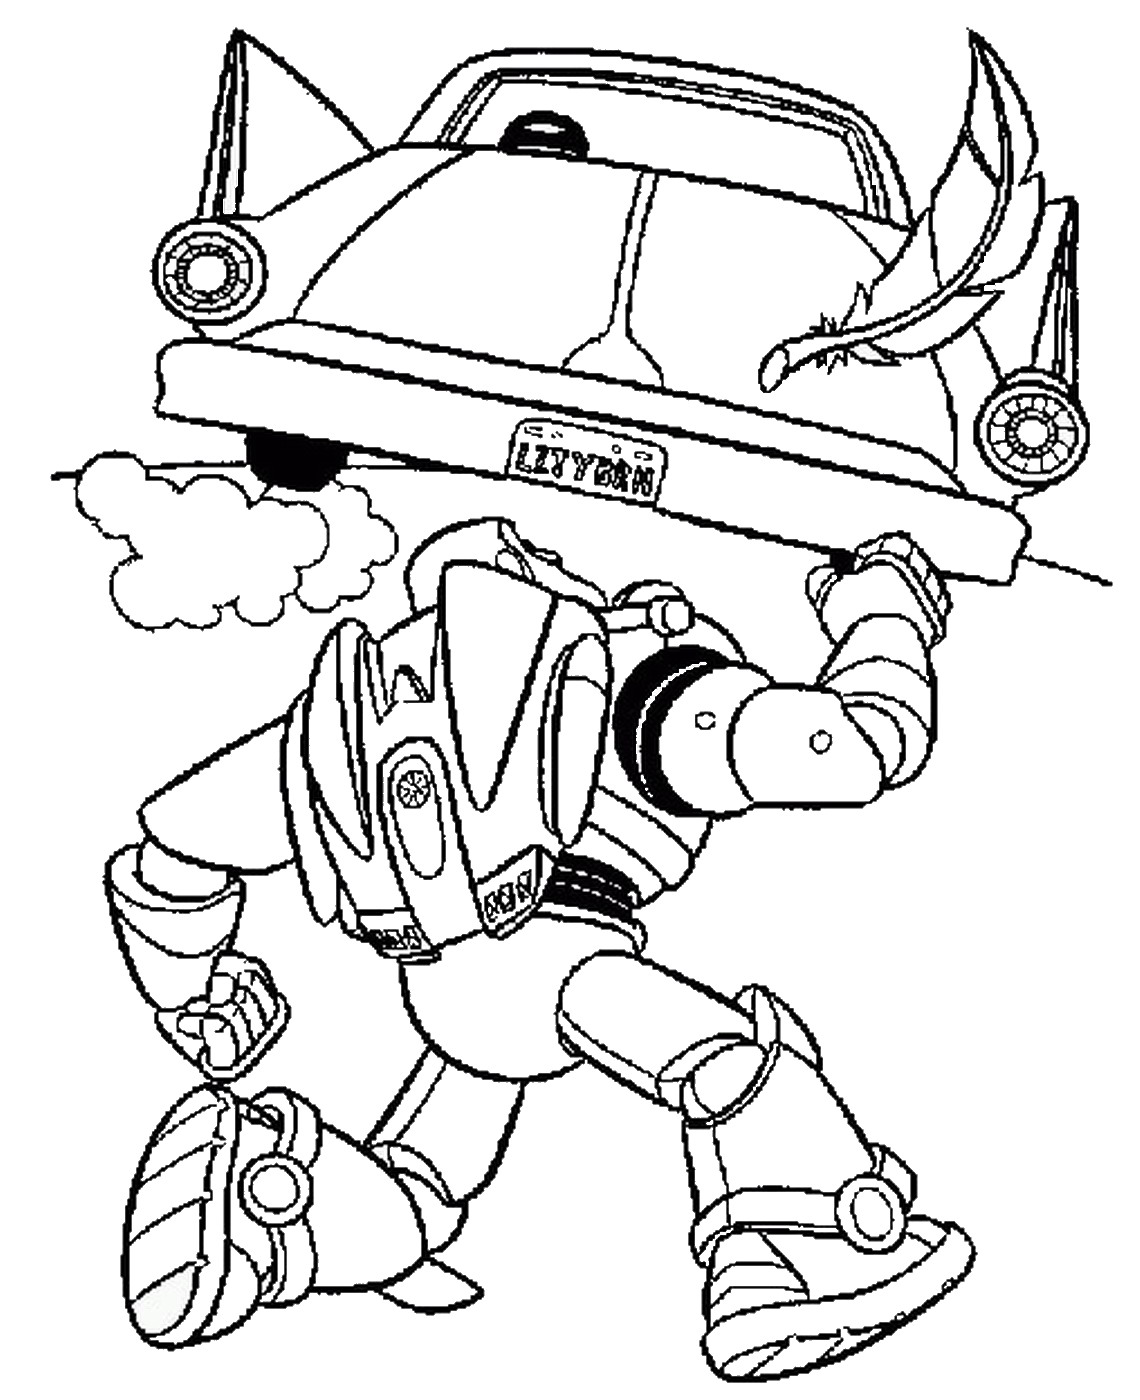 toy story coloring toy story 2 jessie coloring pages coloring home toy coloring story